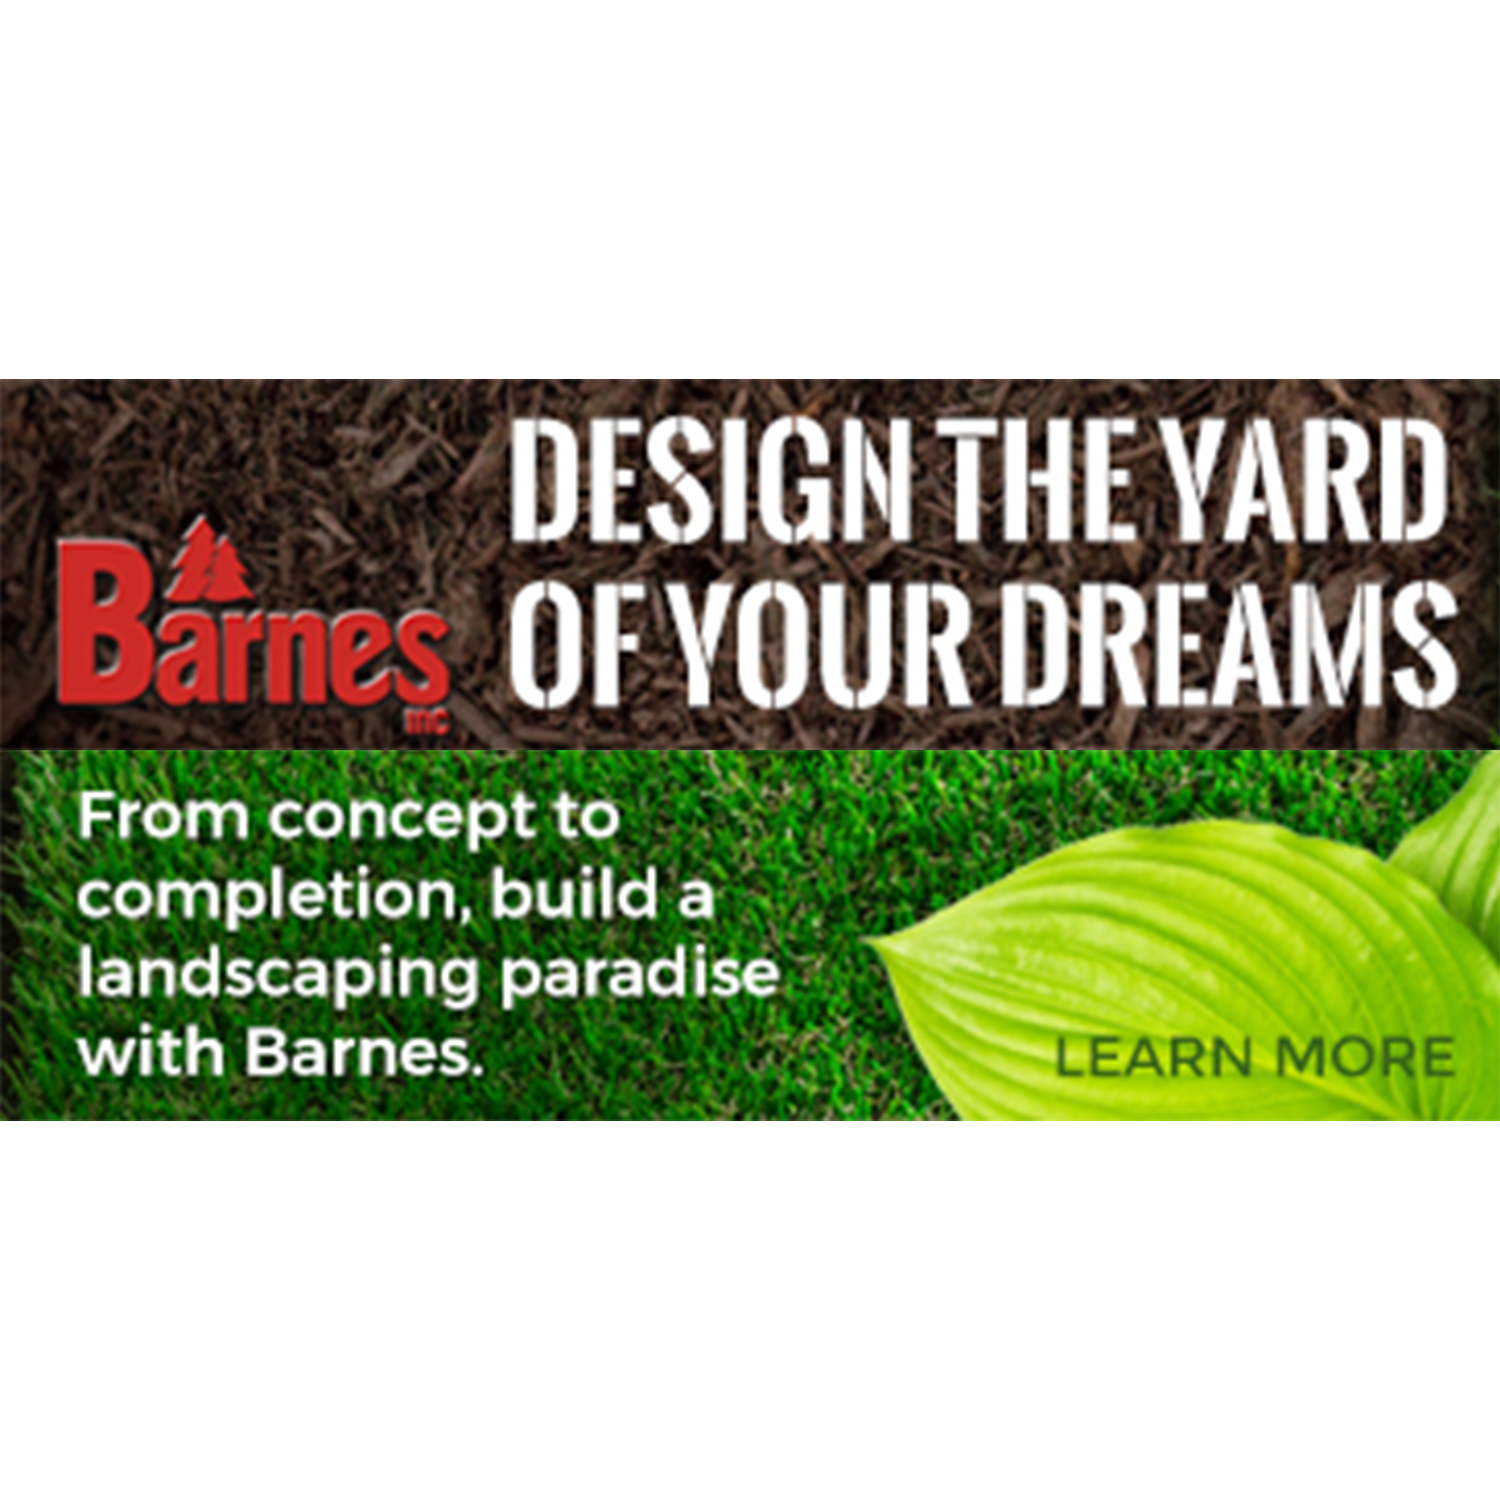 Barnes Dream Yard